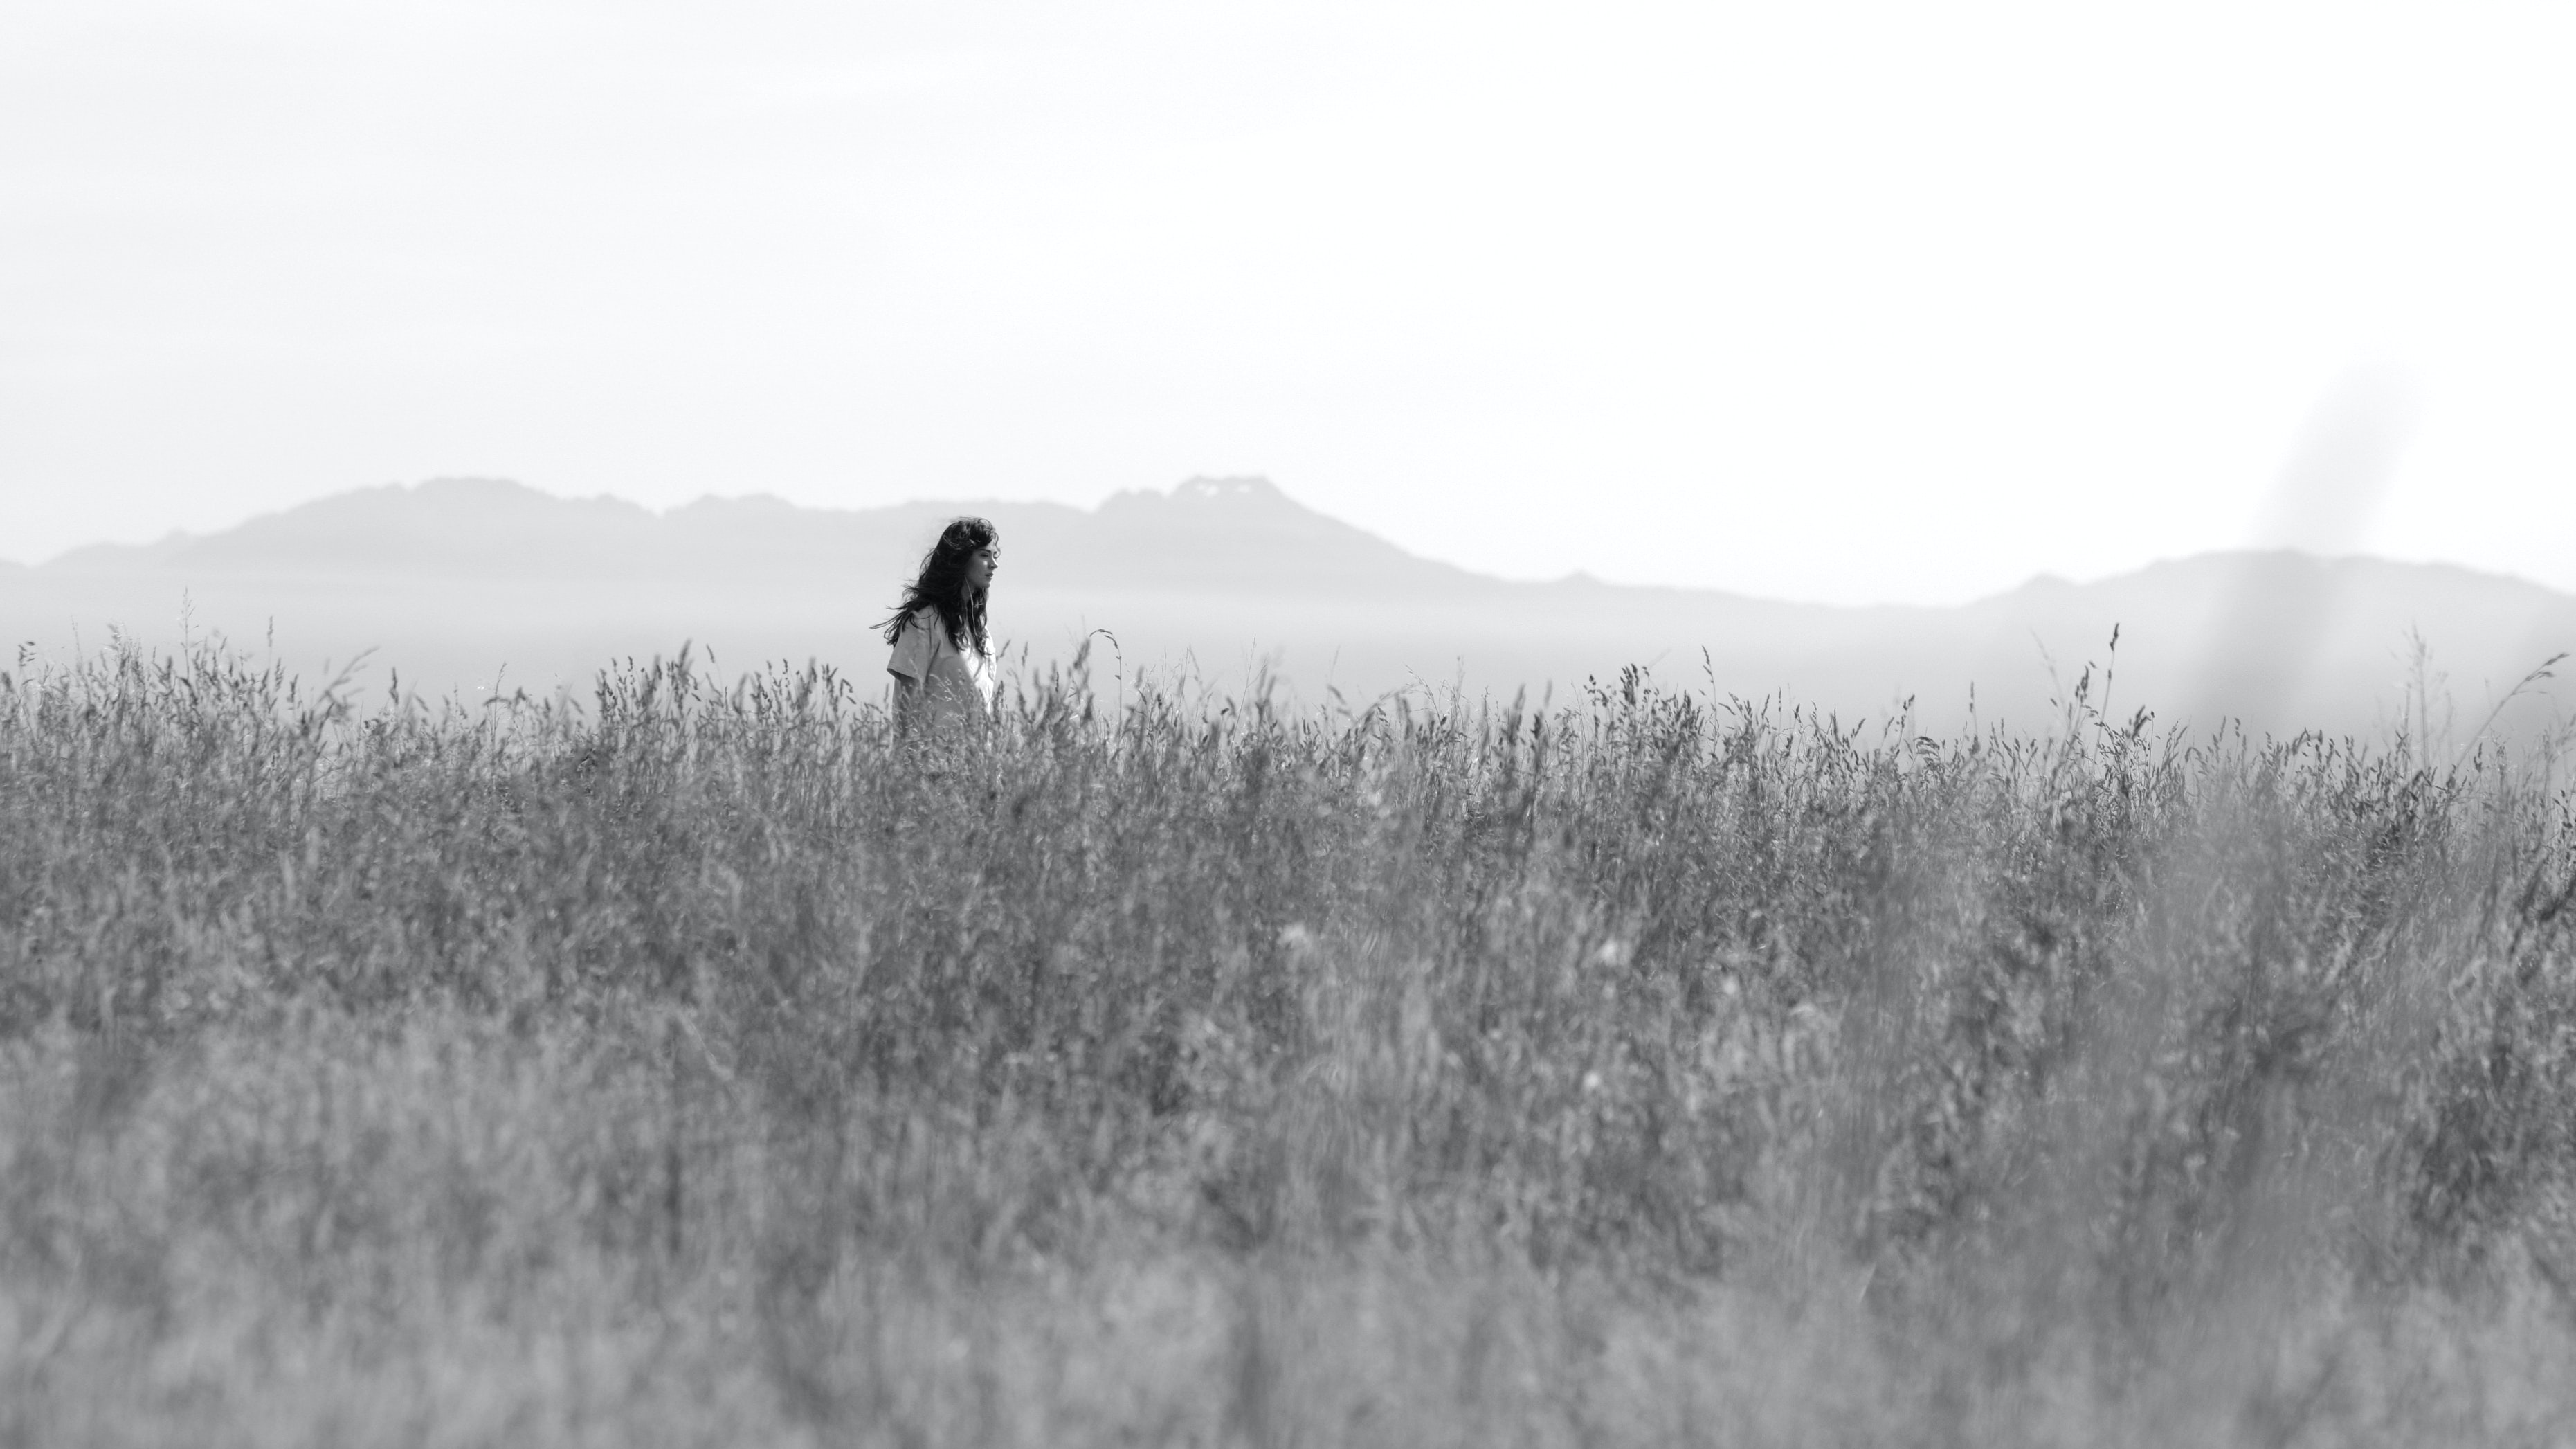 grayscale photography of woman on fields